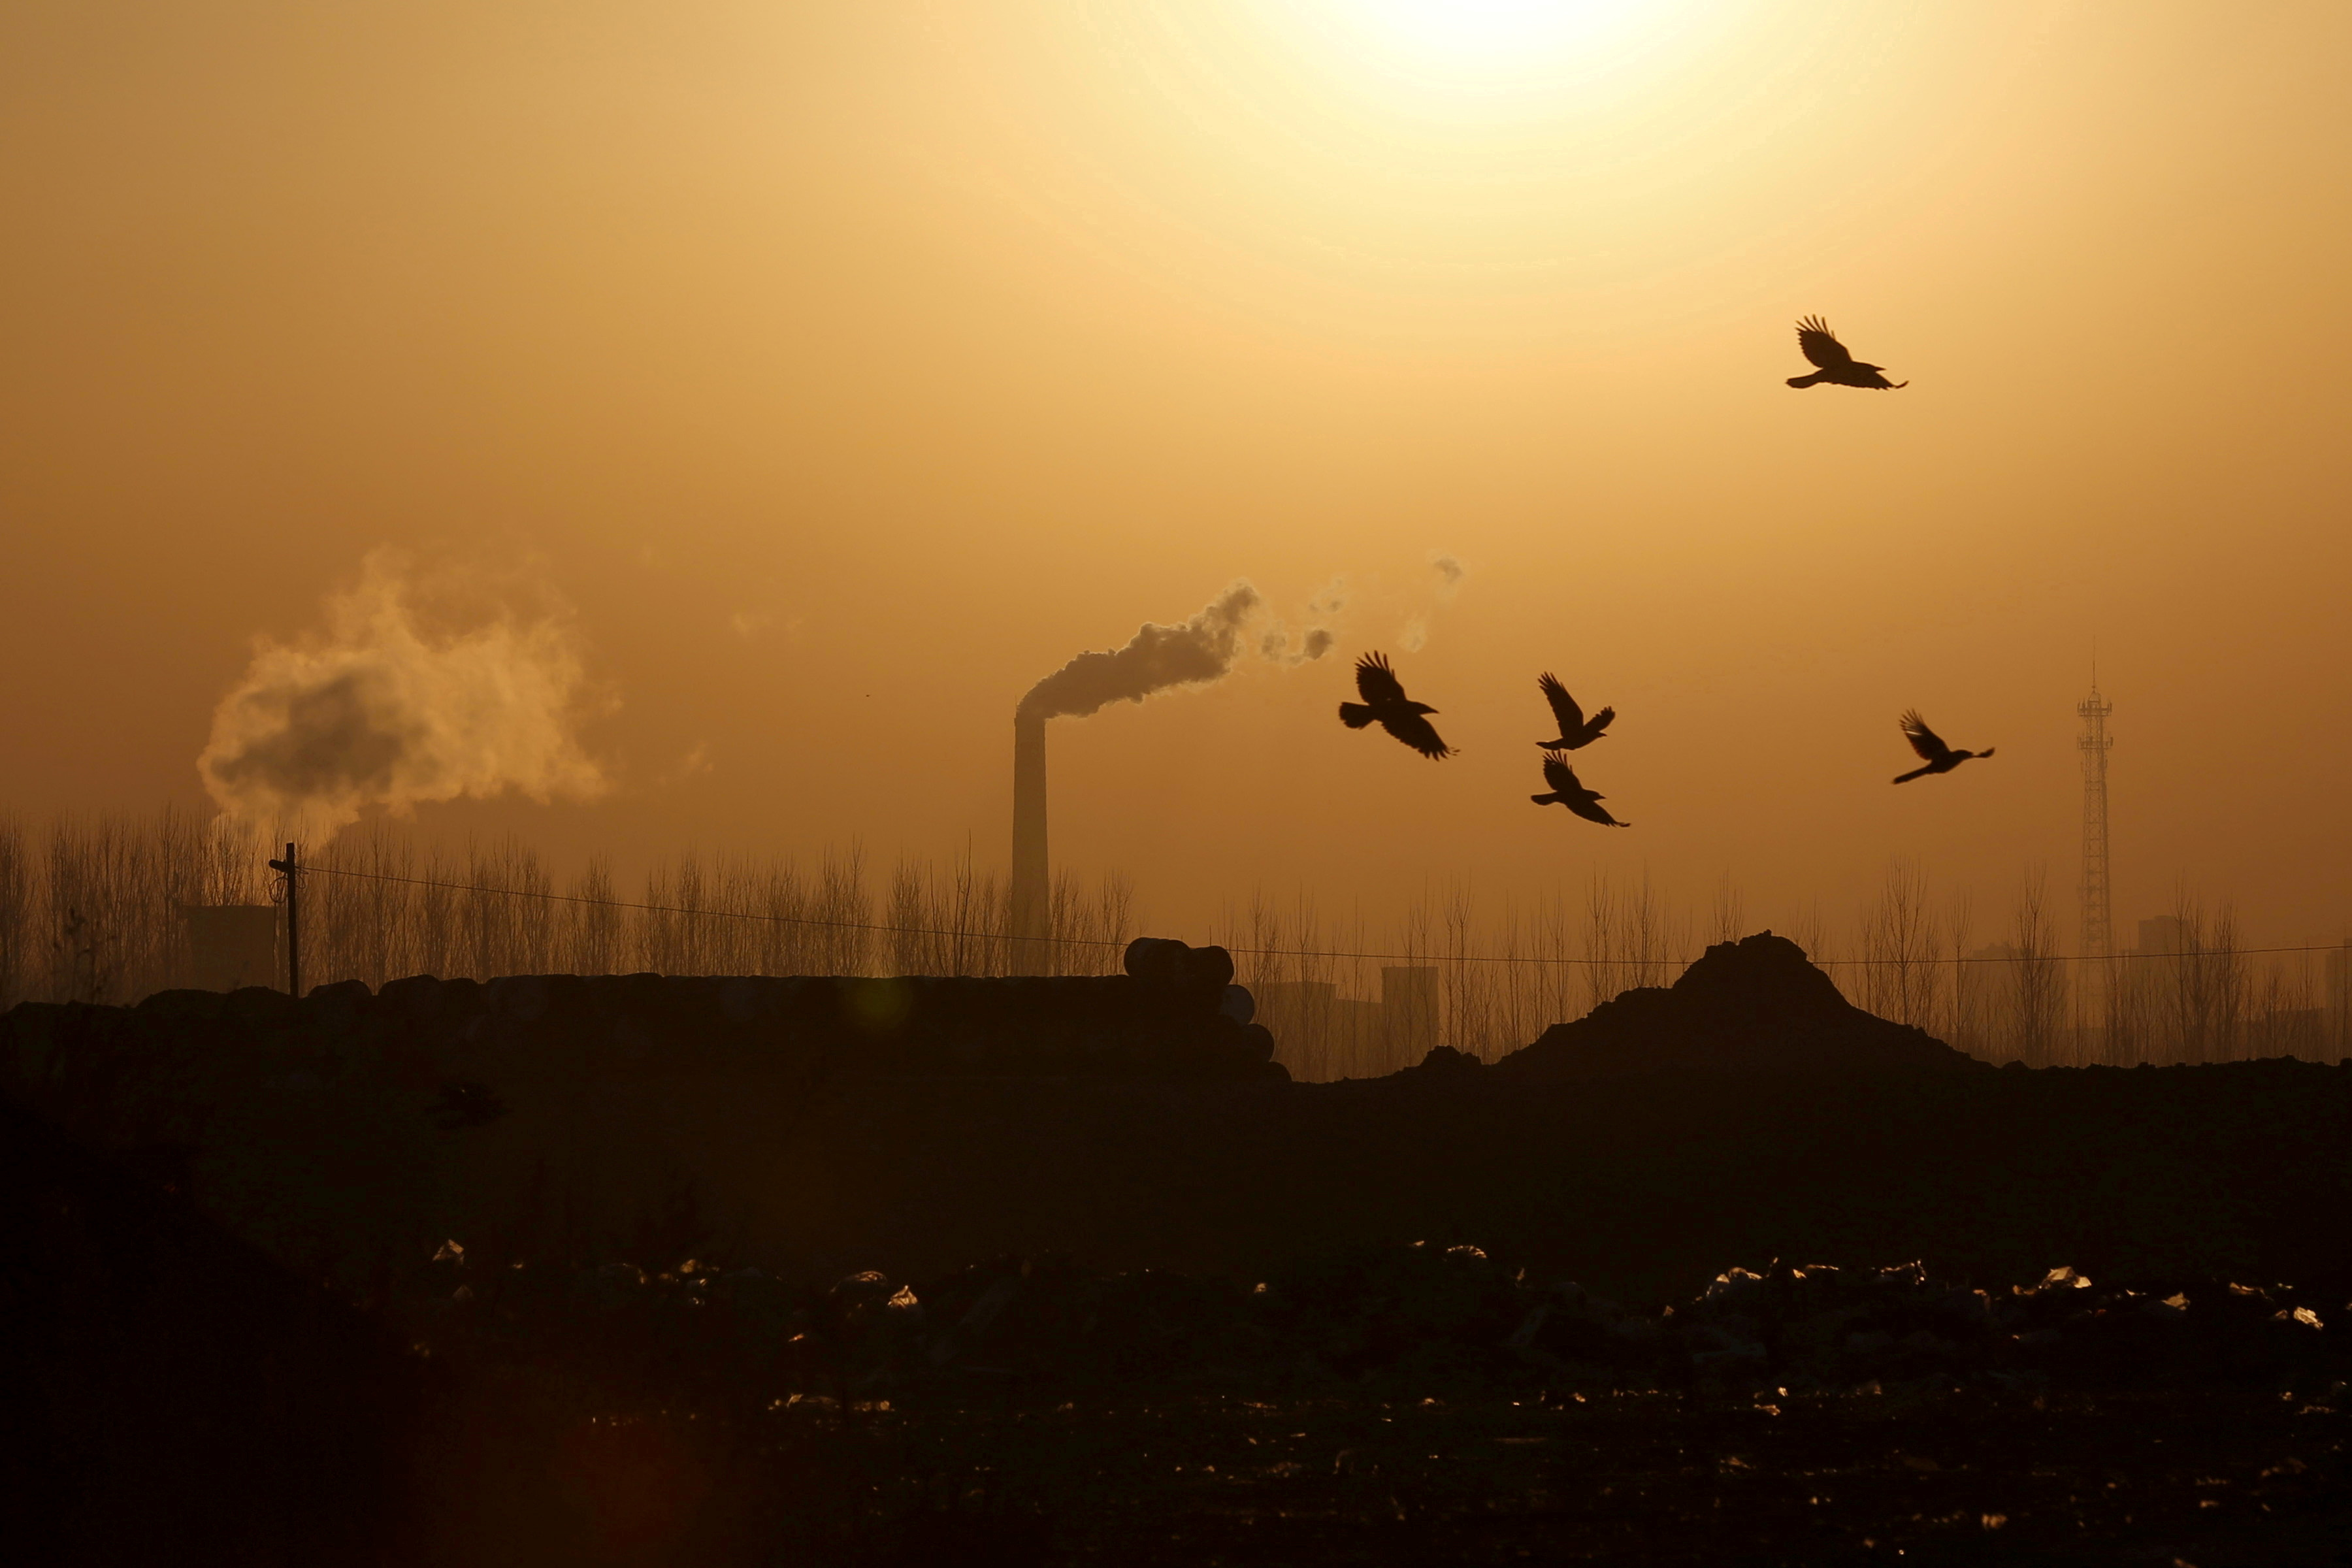 Birds fly over a closed steel factory where chimneys of another working factory are seen in the background, in Tangshan, Hebei province, China, February 27, 2016.  REUTERS/Kim Kyung-Hoon/File Photo